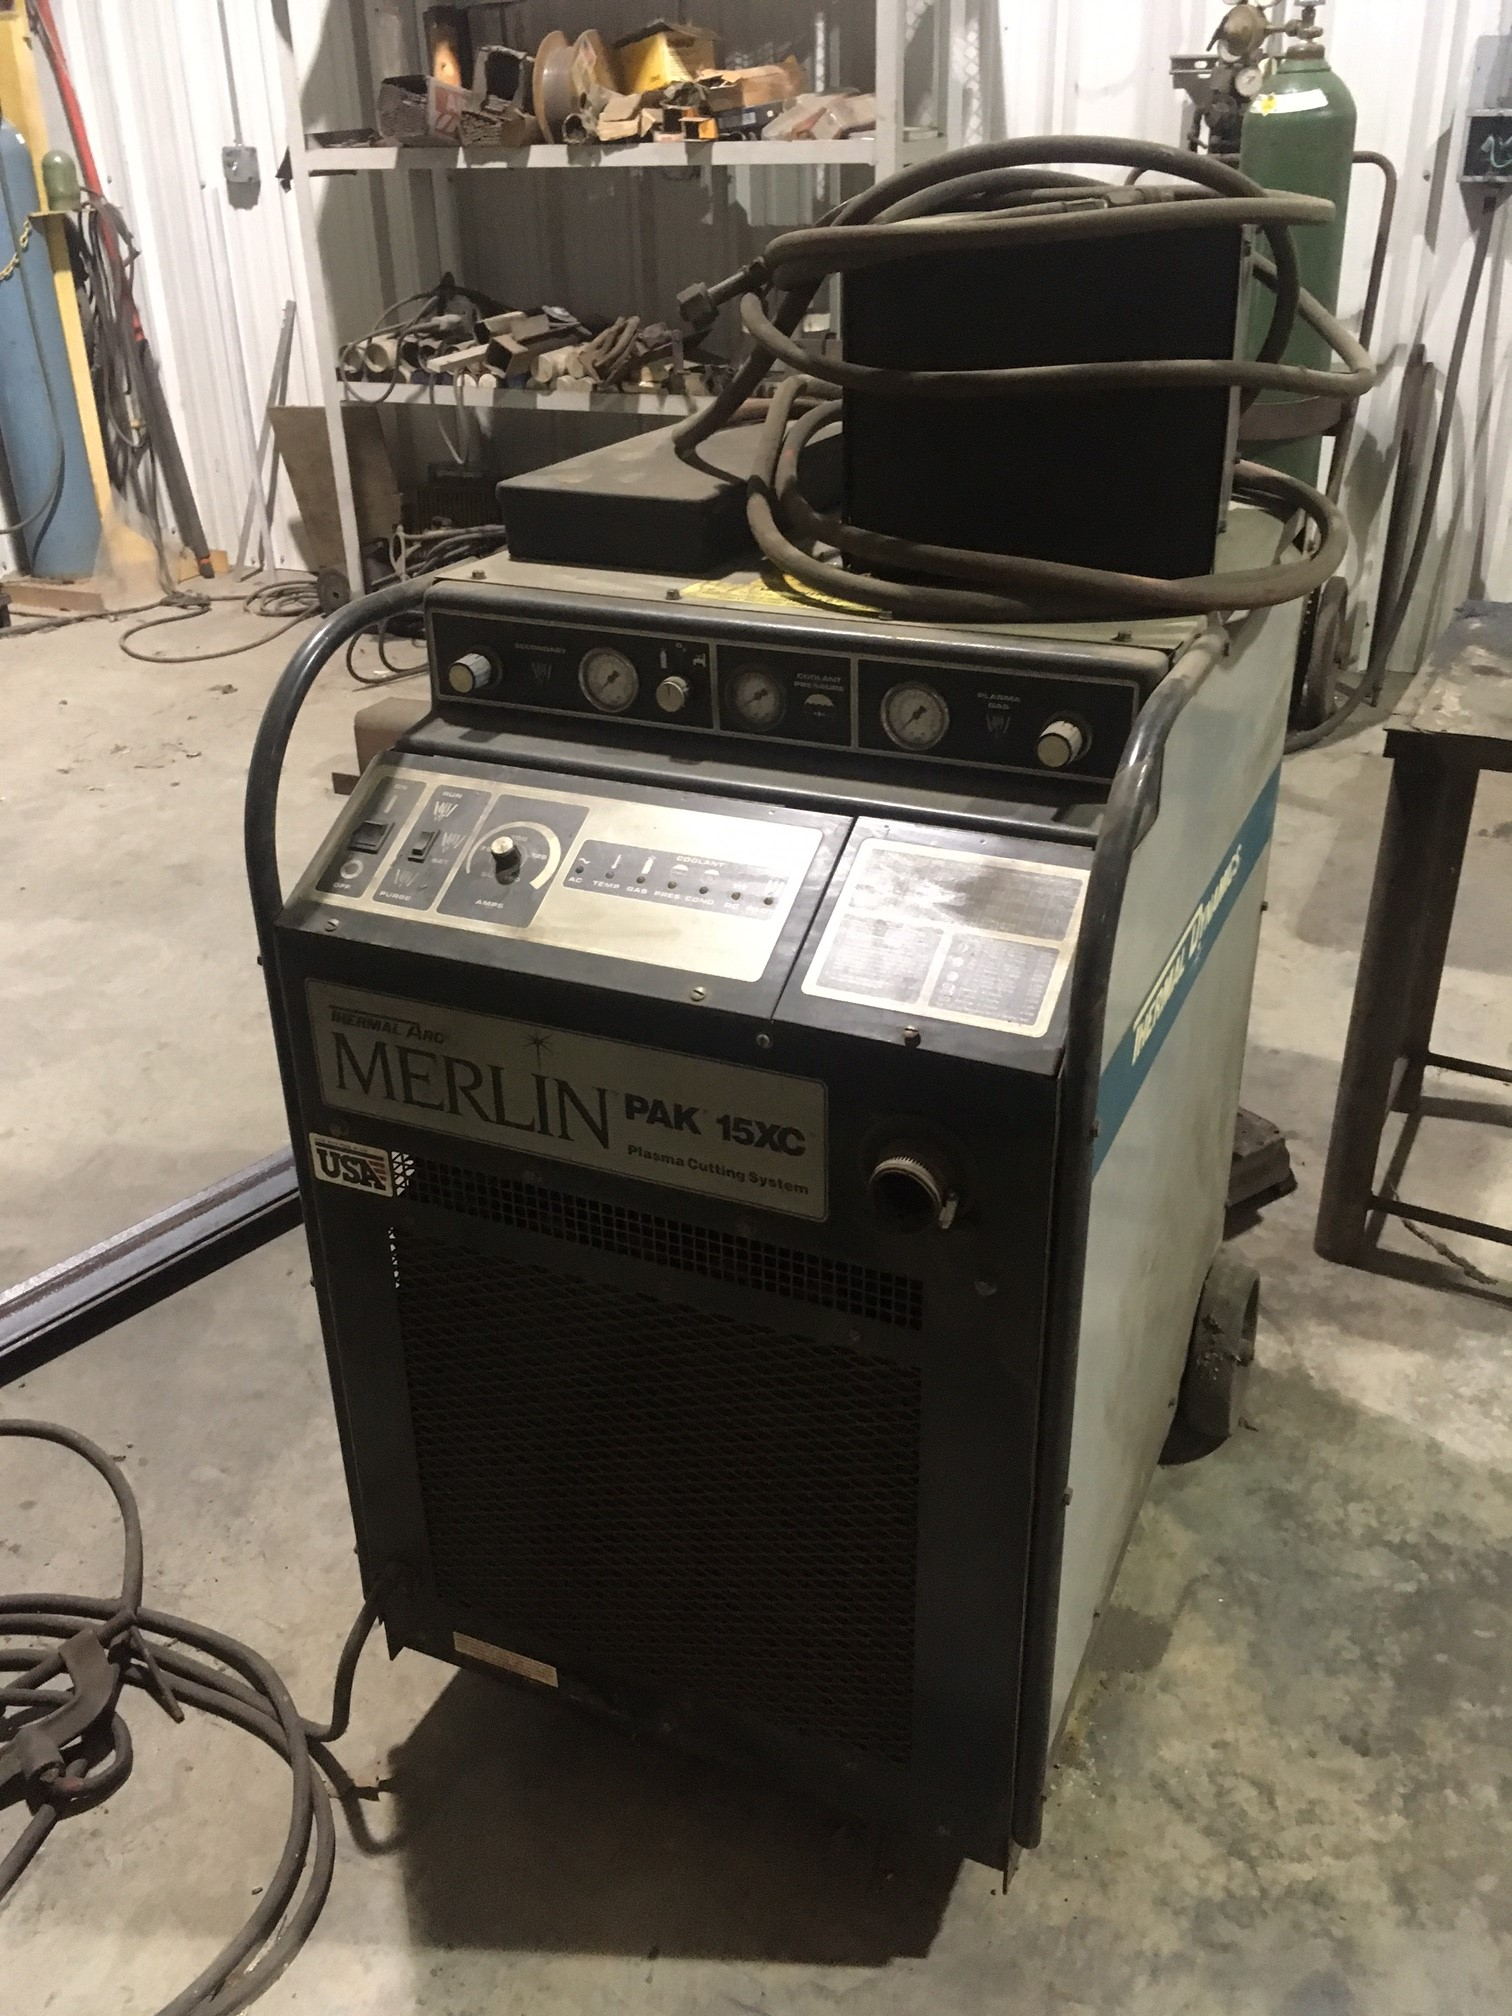 Lot 51 - THERMAL DYNAMICS MDL. PAK 15XL PLASMA POWER SOURCE, S/N T10808A18450 ID (LOCATION H: COMMIATOS